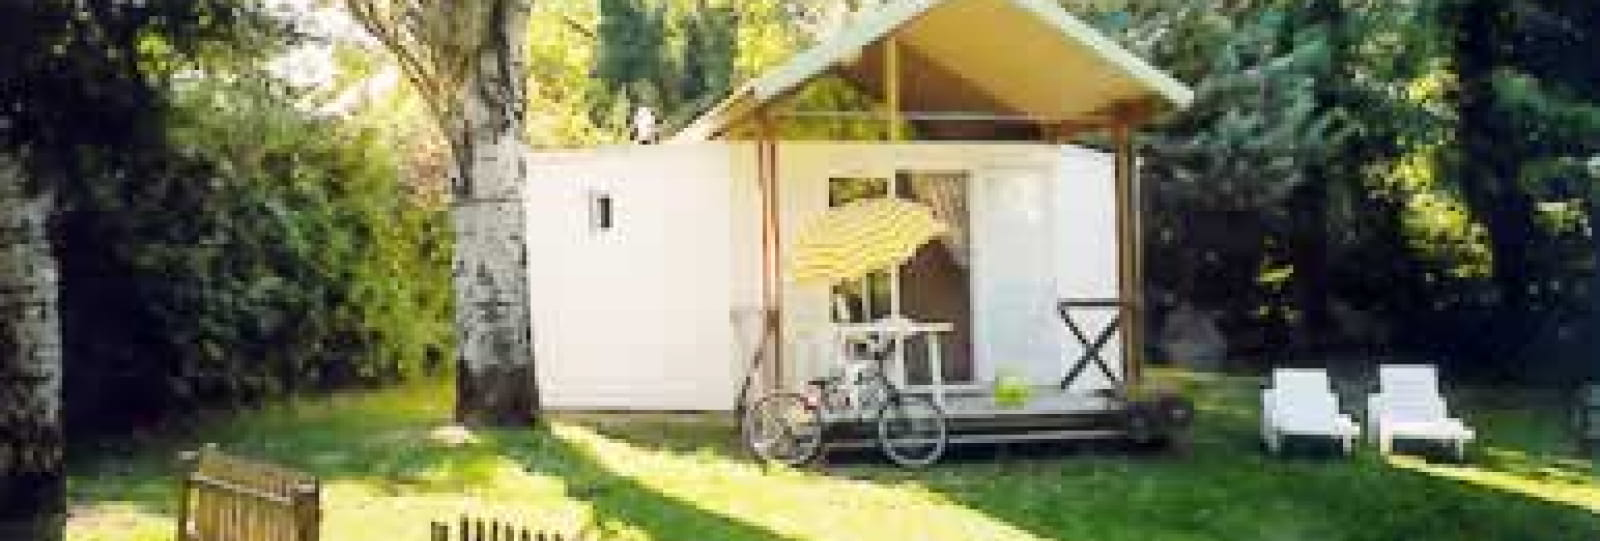 Chalets - Camping les Clorinthes